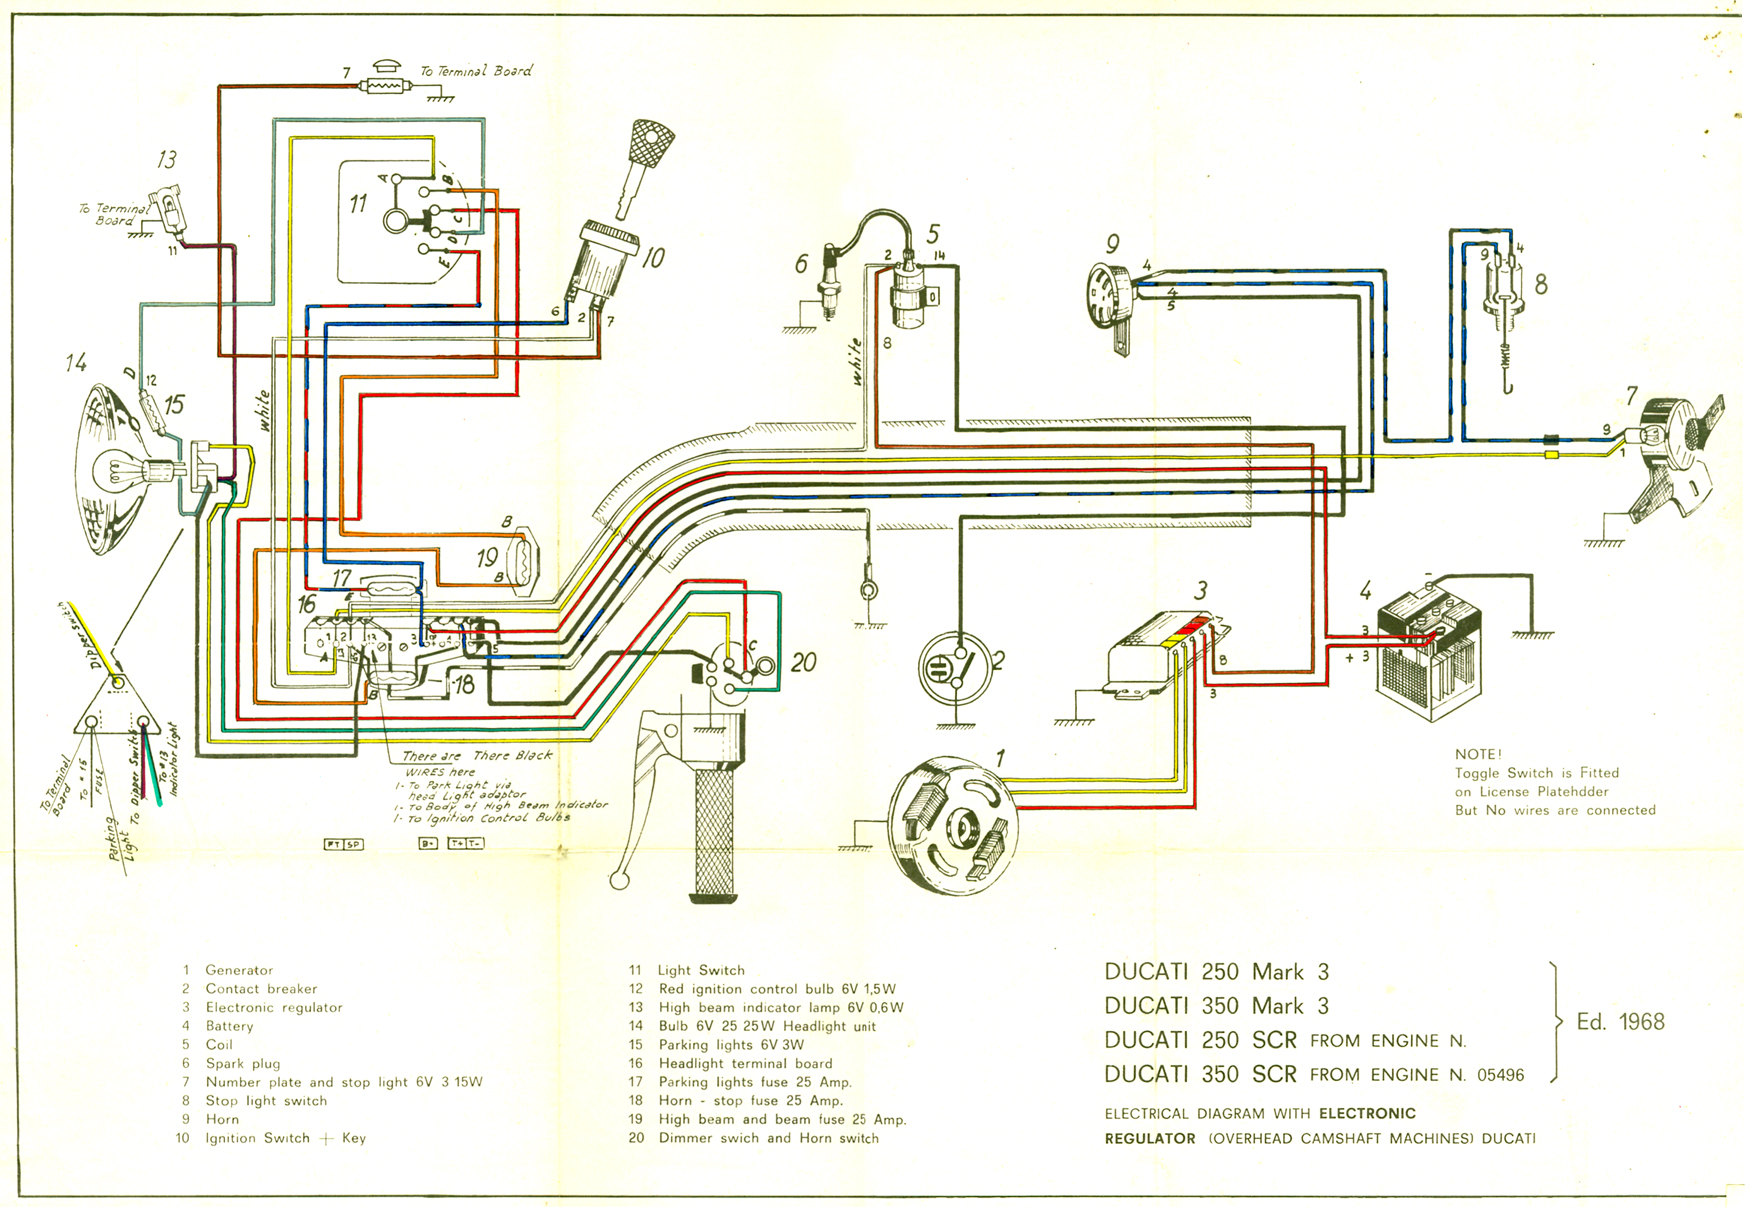 Ducati 748 Wiring Diagram - Daily Electronical Wiring Diagram on